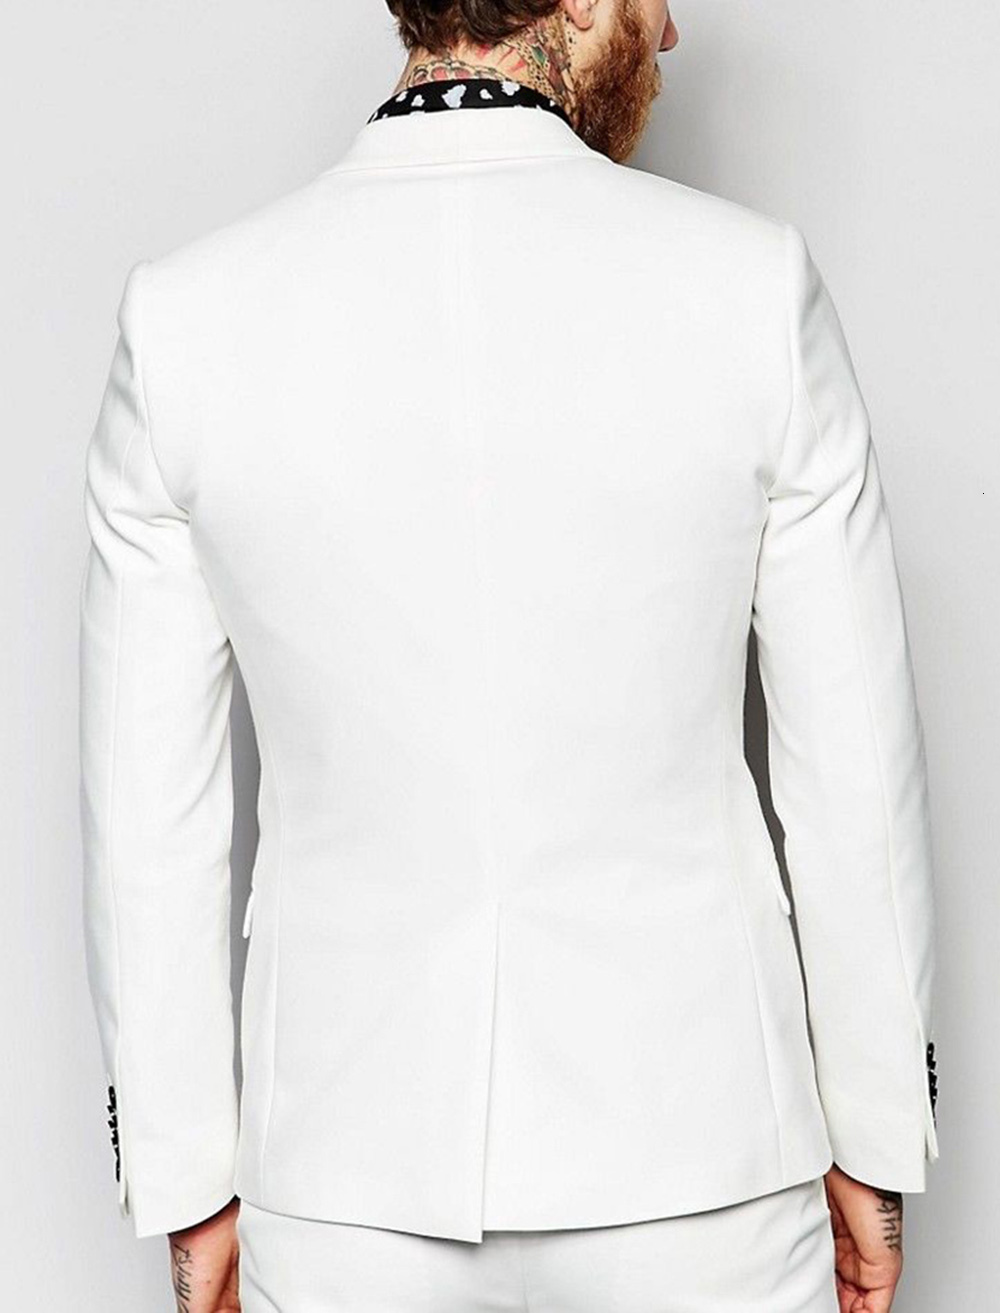 2020-New-Men-White-Suits-3-Piece-Slim-Fit-Double-breasted-Vest-Tuxedo-Groomsmen-For-Wedding